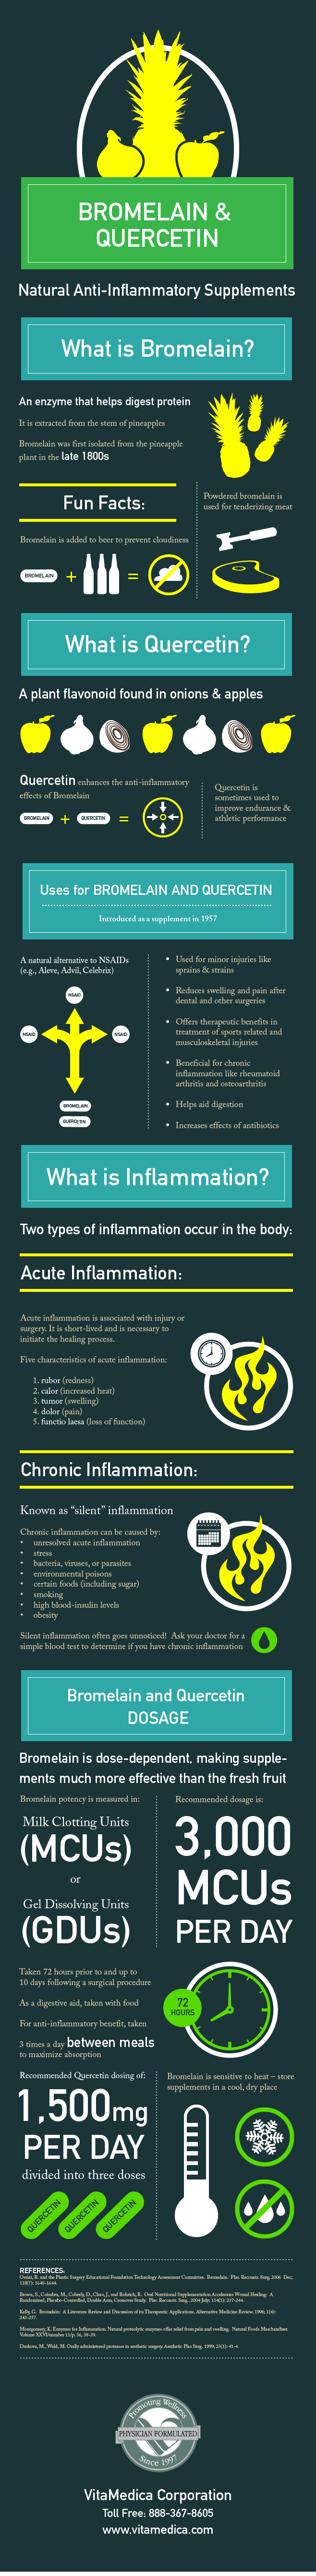 Bromelain And Quercetin Natural Anti Inflammatory Supplements Inflammation Is The Body S Natural Reaction To Tissue Damage But Despite Your Bod